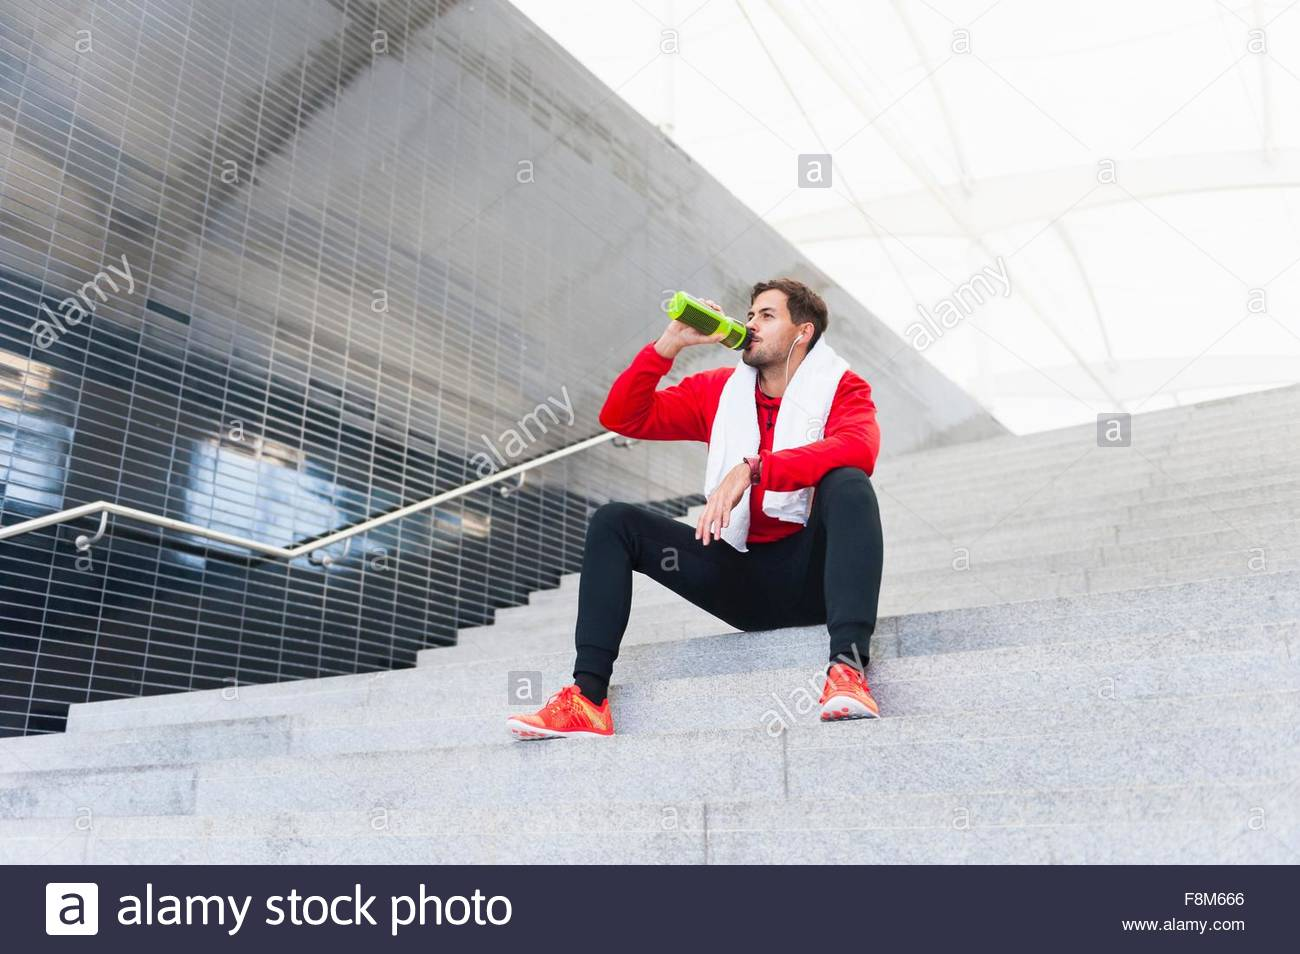 Young male runner drinking water bottle on city stairway - Stock Image